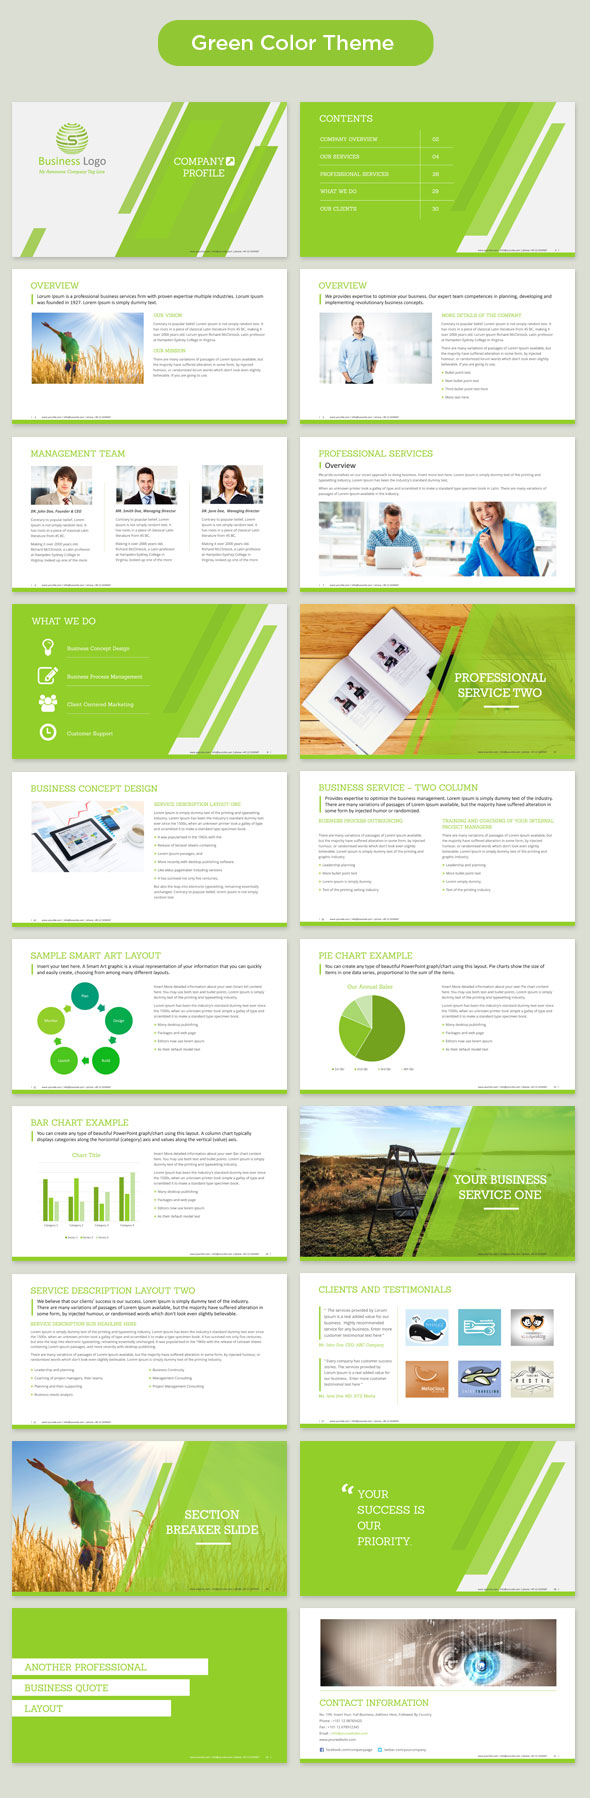 company profile powerpoint template 350 master ppt slide templates. Black Bedroom Furniture Sets. Home Design Ideas